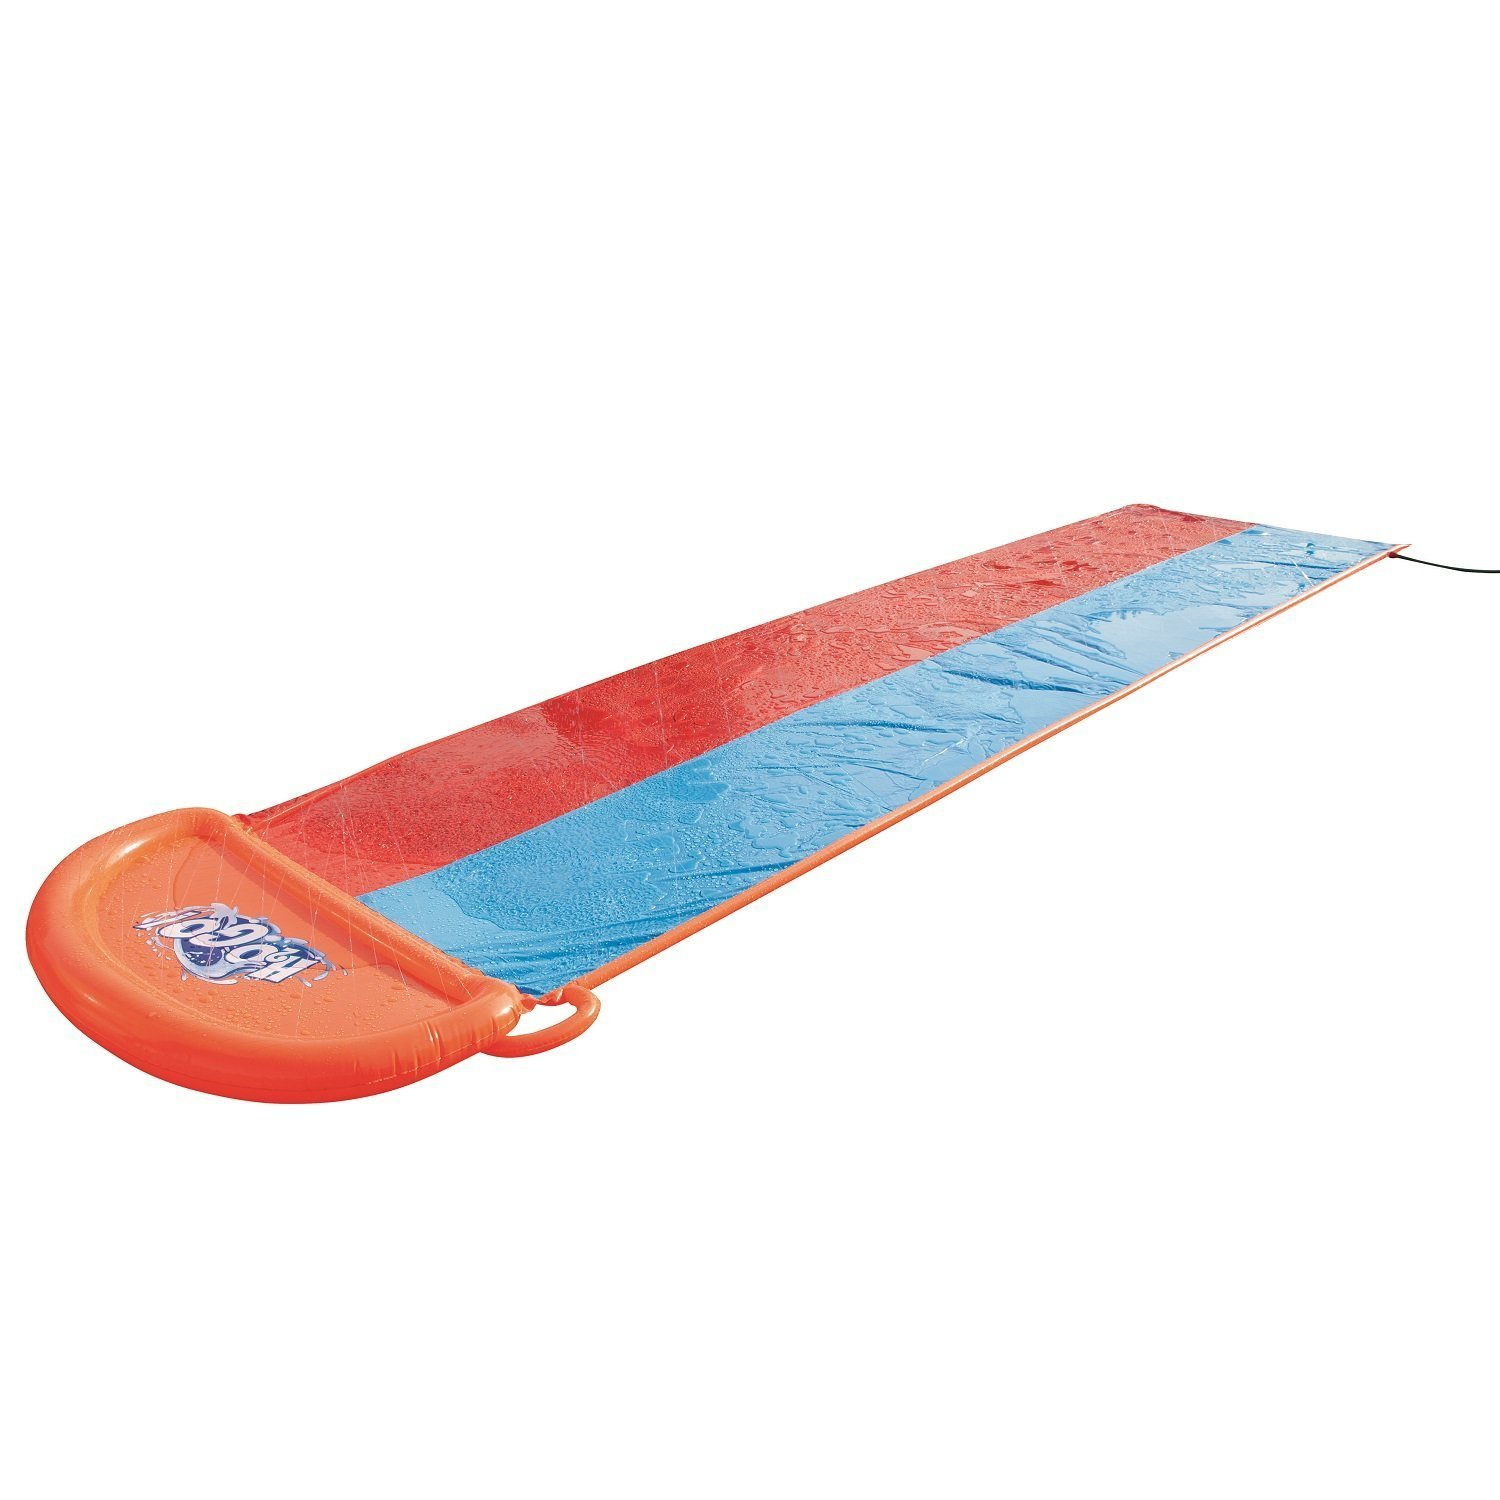 Inflatable Water Slide - Slip N Slide For Kids Toddlers With Sprinklers Splash And Double Lane - Waterslide For All Family Use In Grassy Area Outdoor With Children And Their Friends